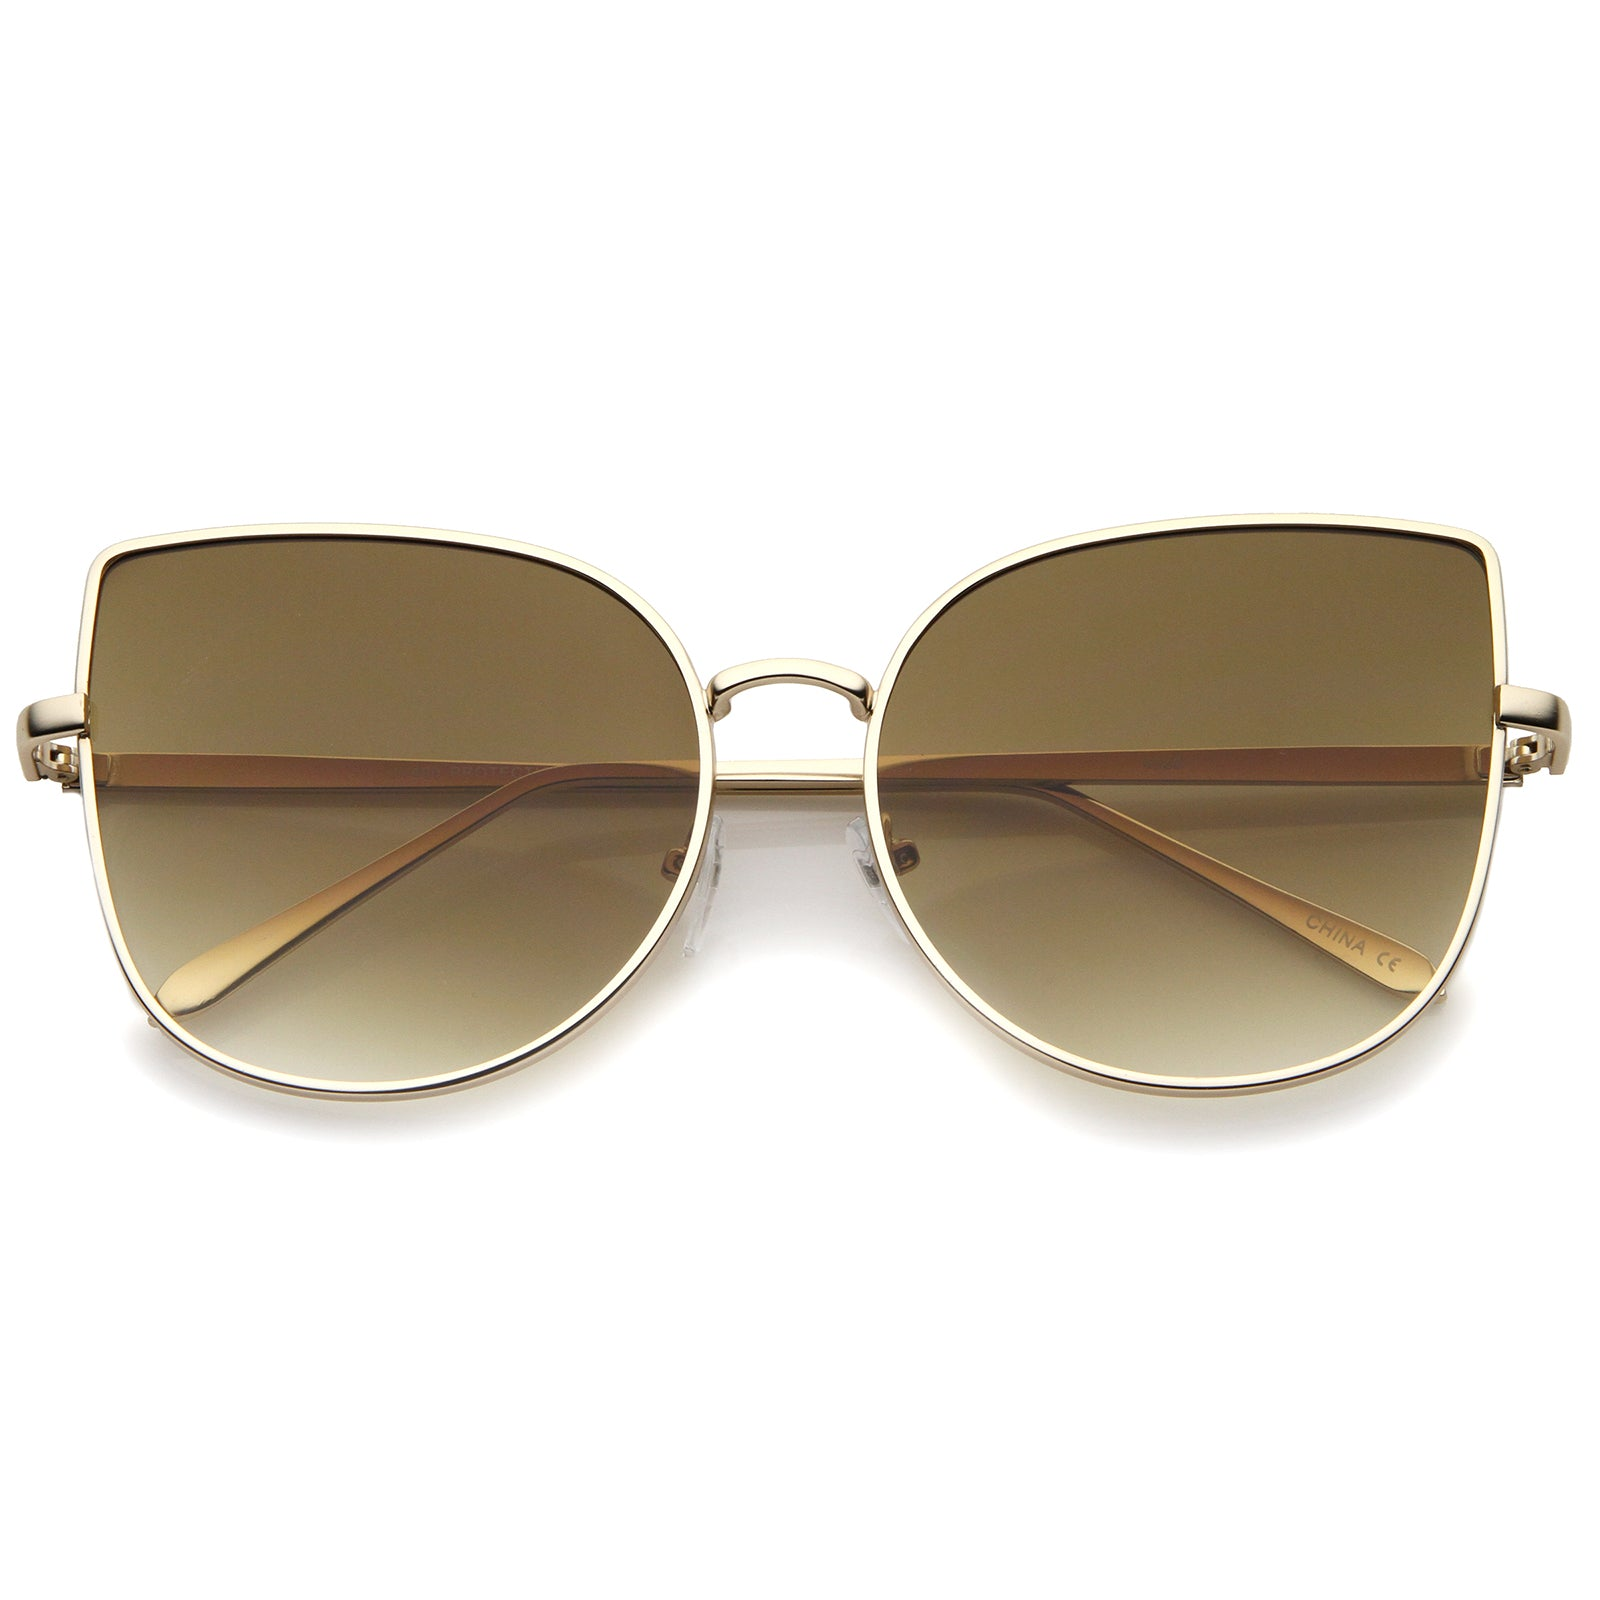 Women's Oversize Slim Metal Frame Gradient Flat Lens Cat Eye Sunglasses 58mm - sunglass.la - 1